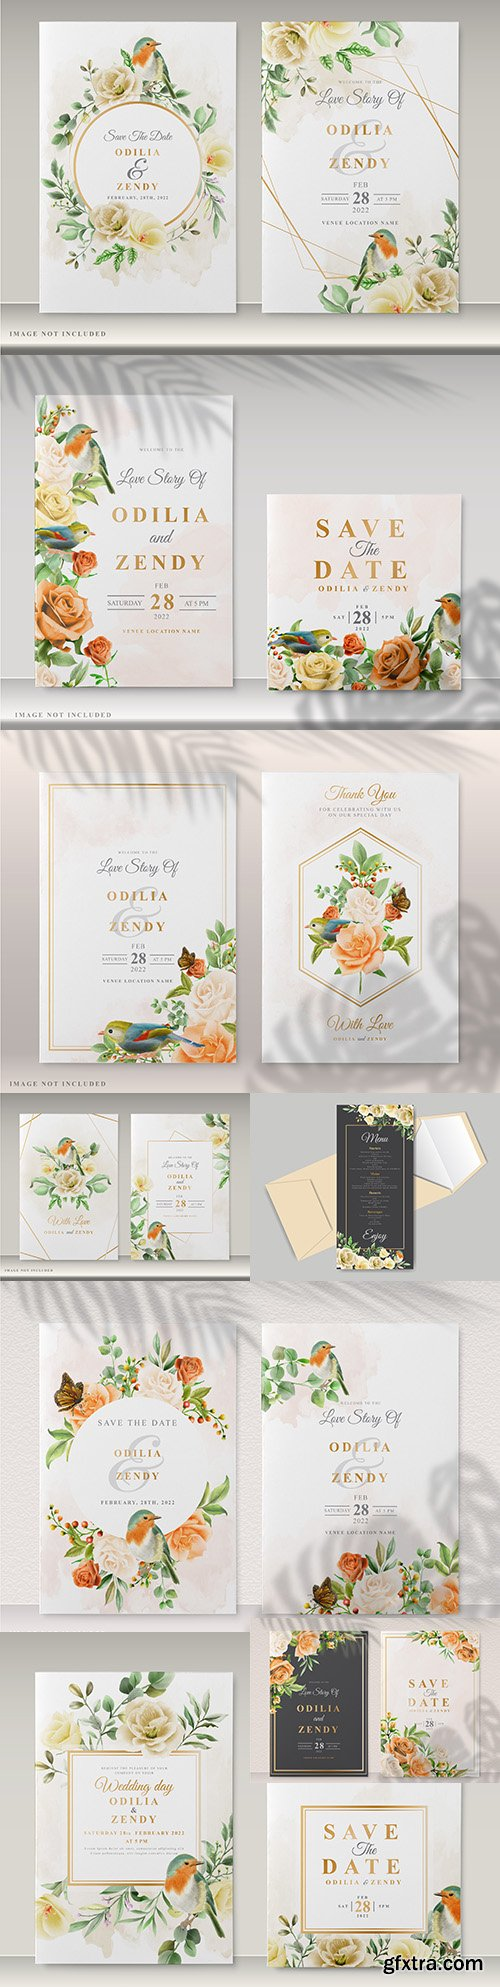 Beautiful wedding invitation template with flowers and birds